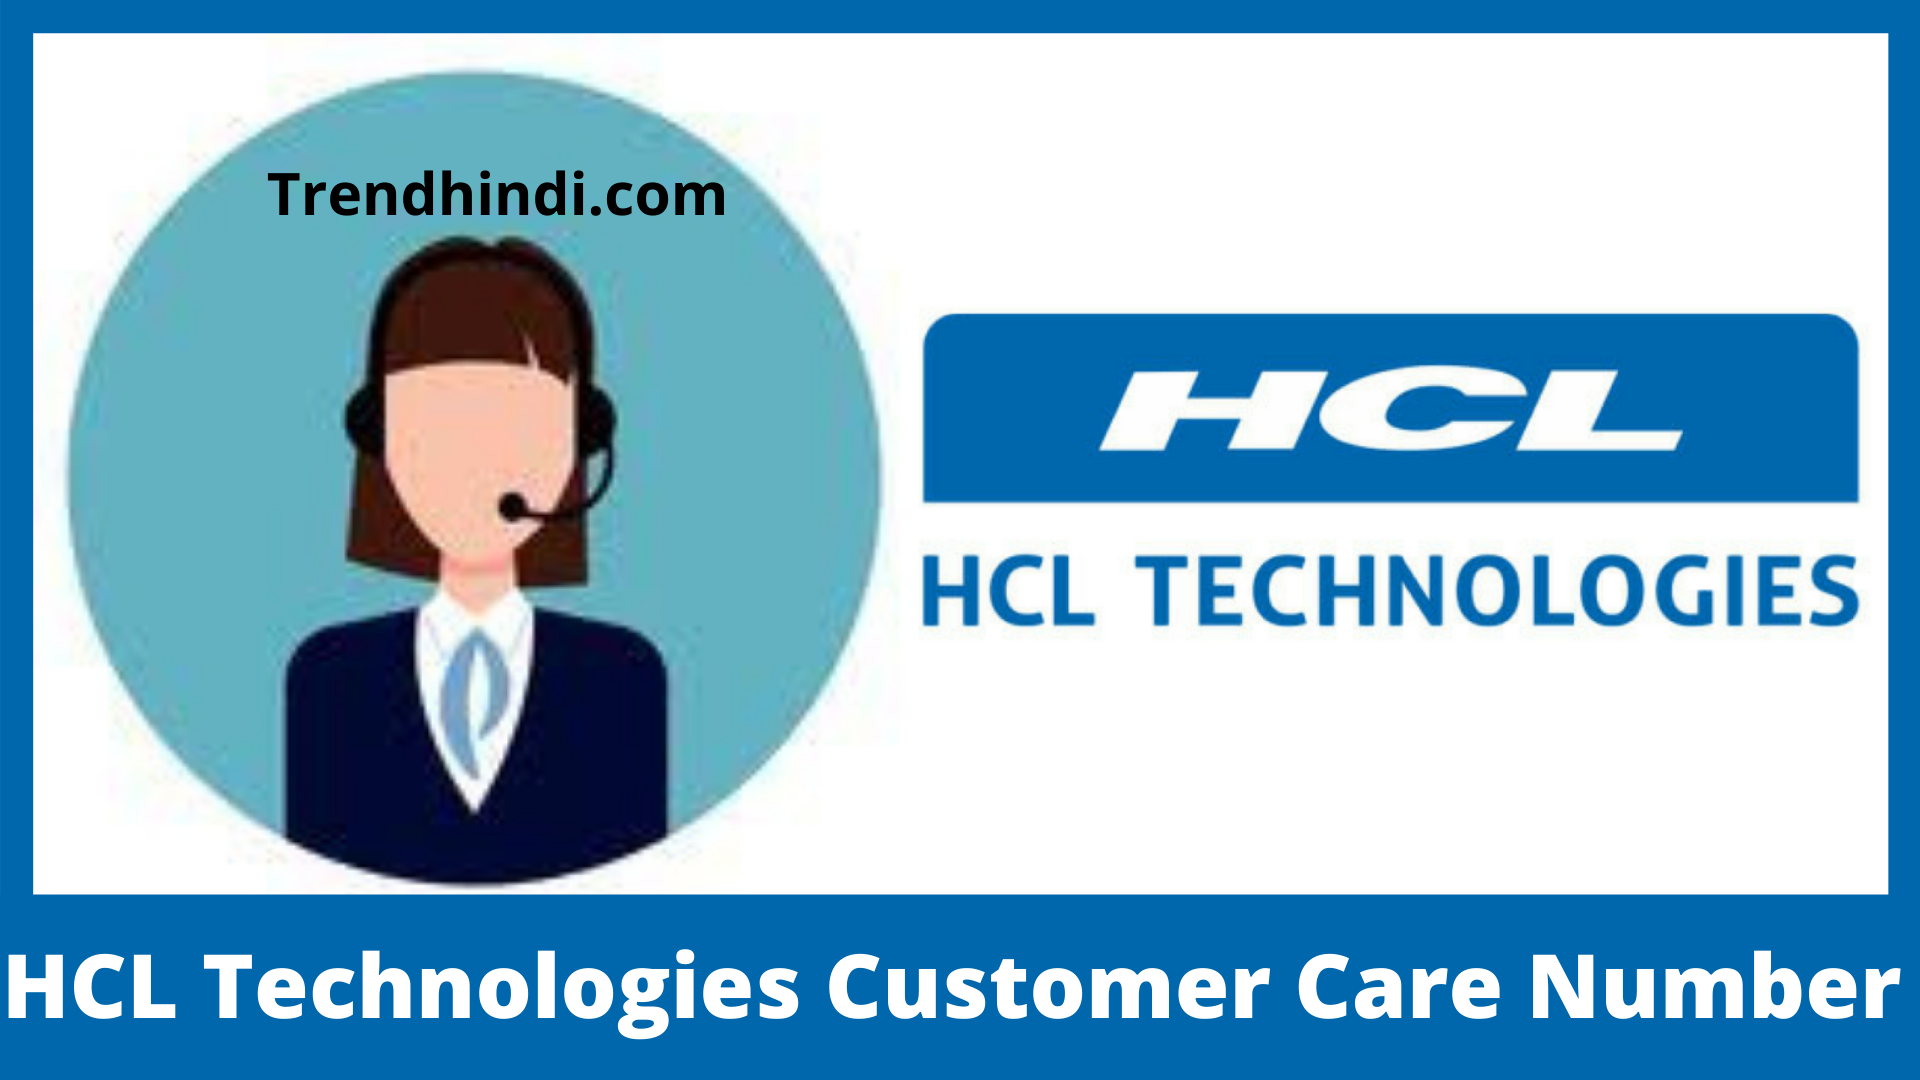 HCL Technologies Customer Care Number